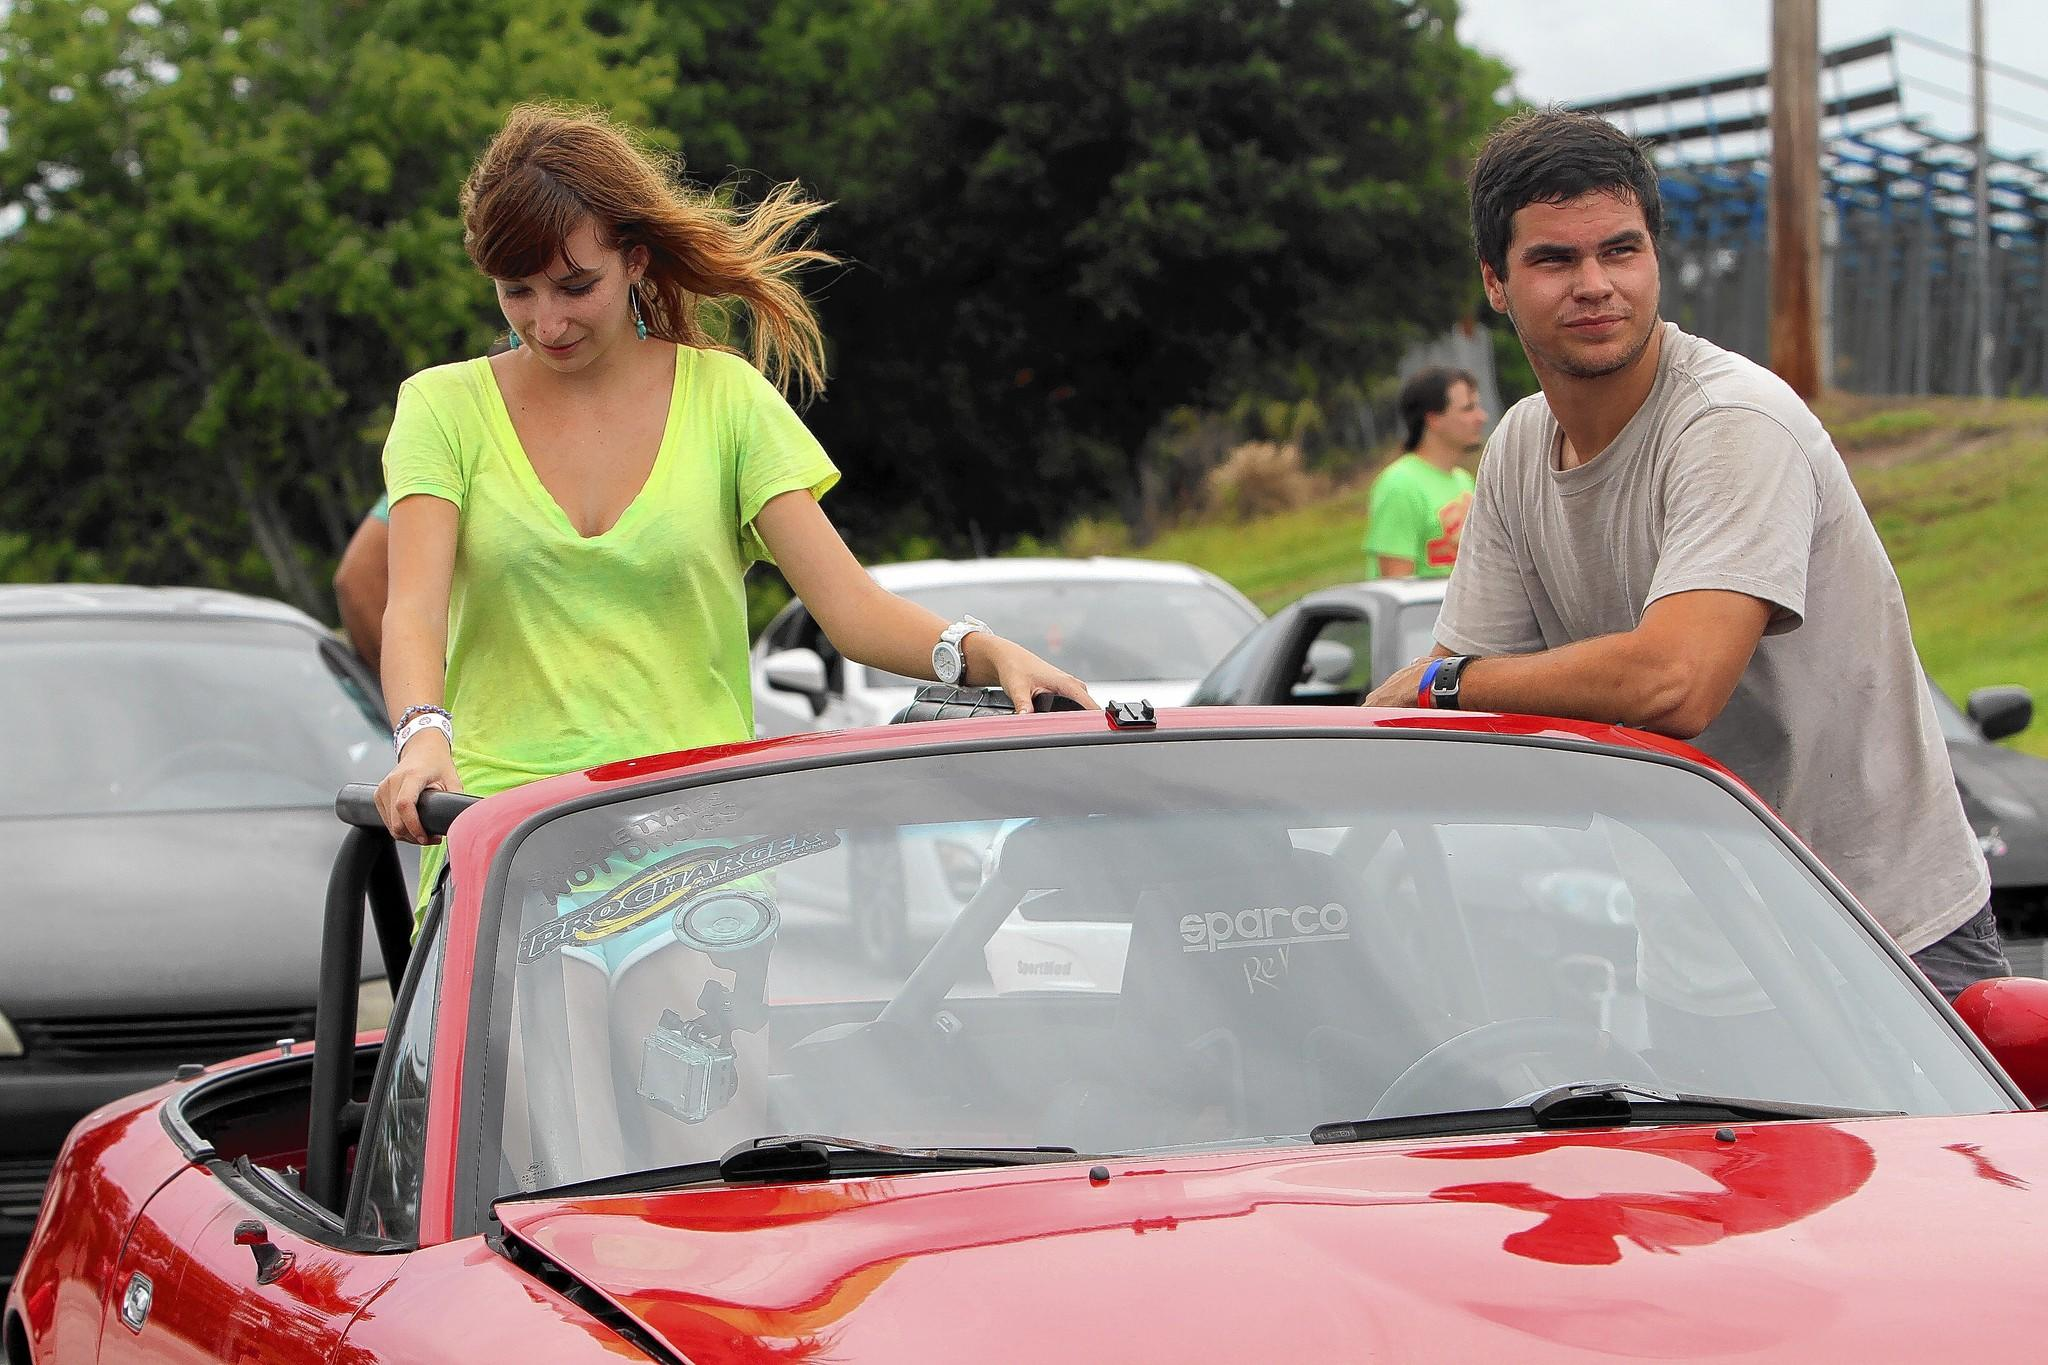 Driver Douglas Dircks, along with his girlfriend, Elisabath Pomeroy, waits in line to take his car on a drift at the oval track at Orlando Speed World.